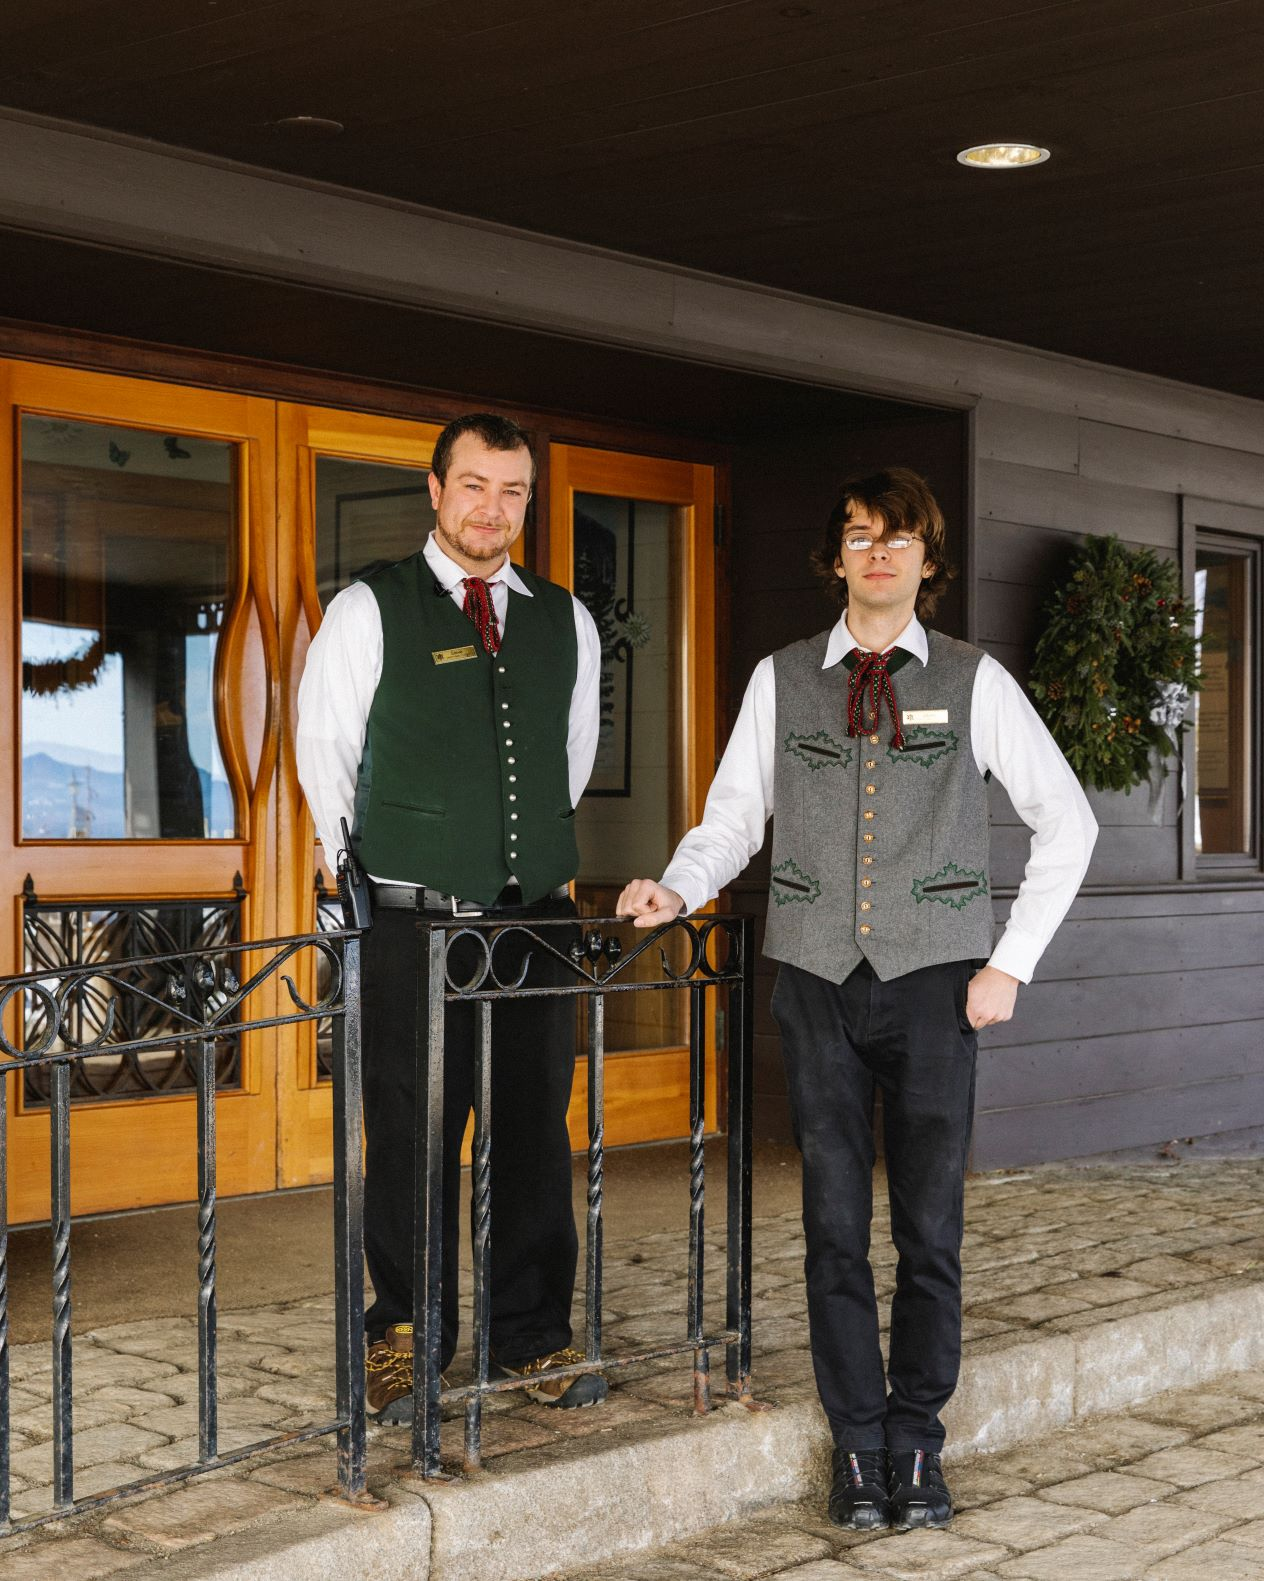 Hospitality careers at Trapp Family Lodge in Stowe, VT